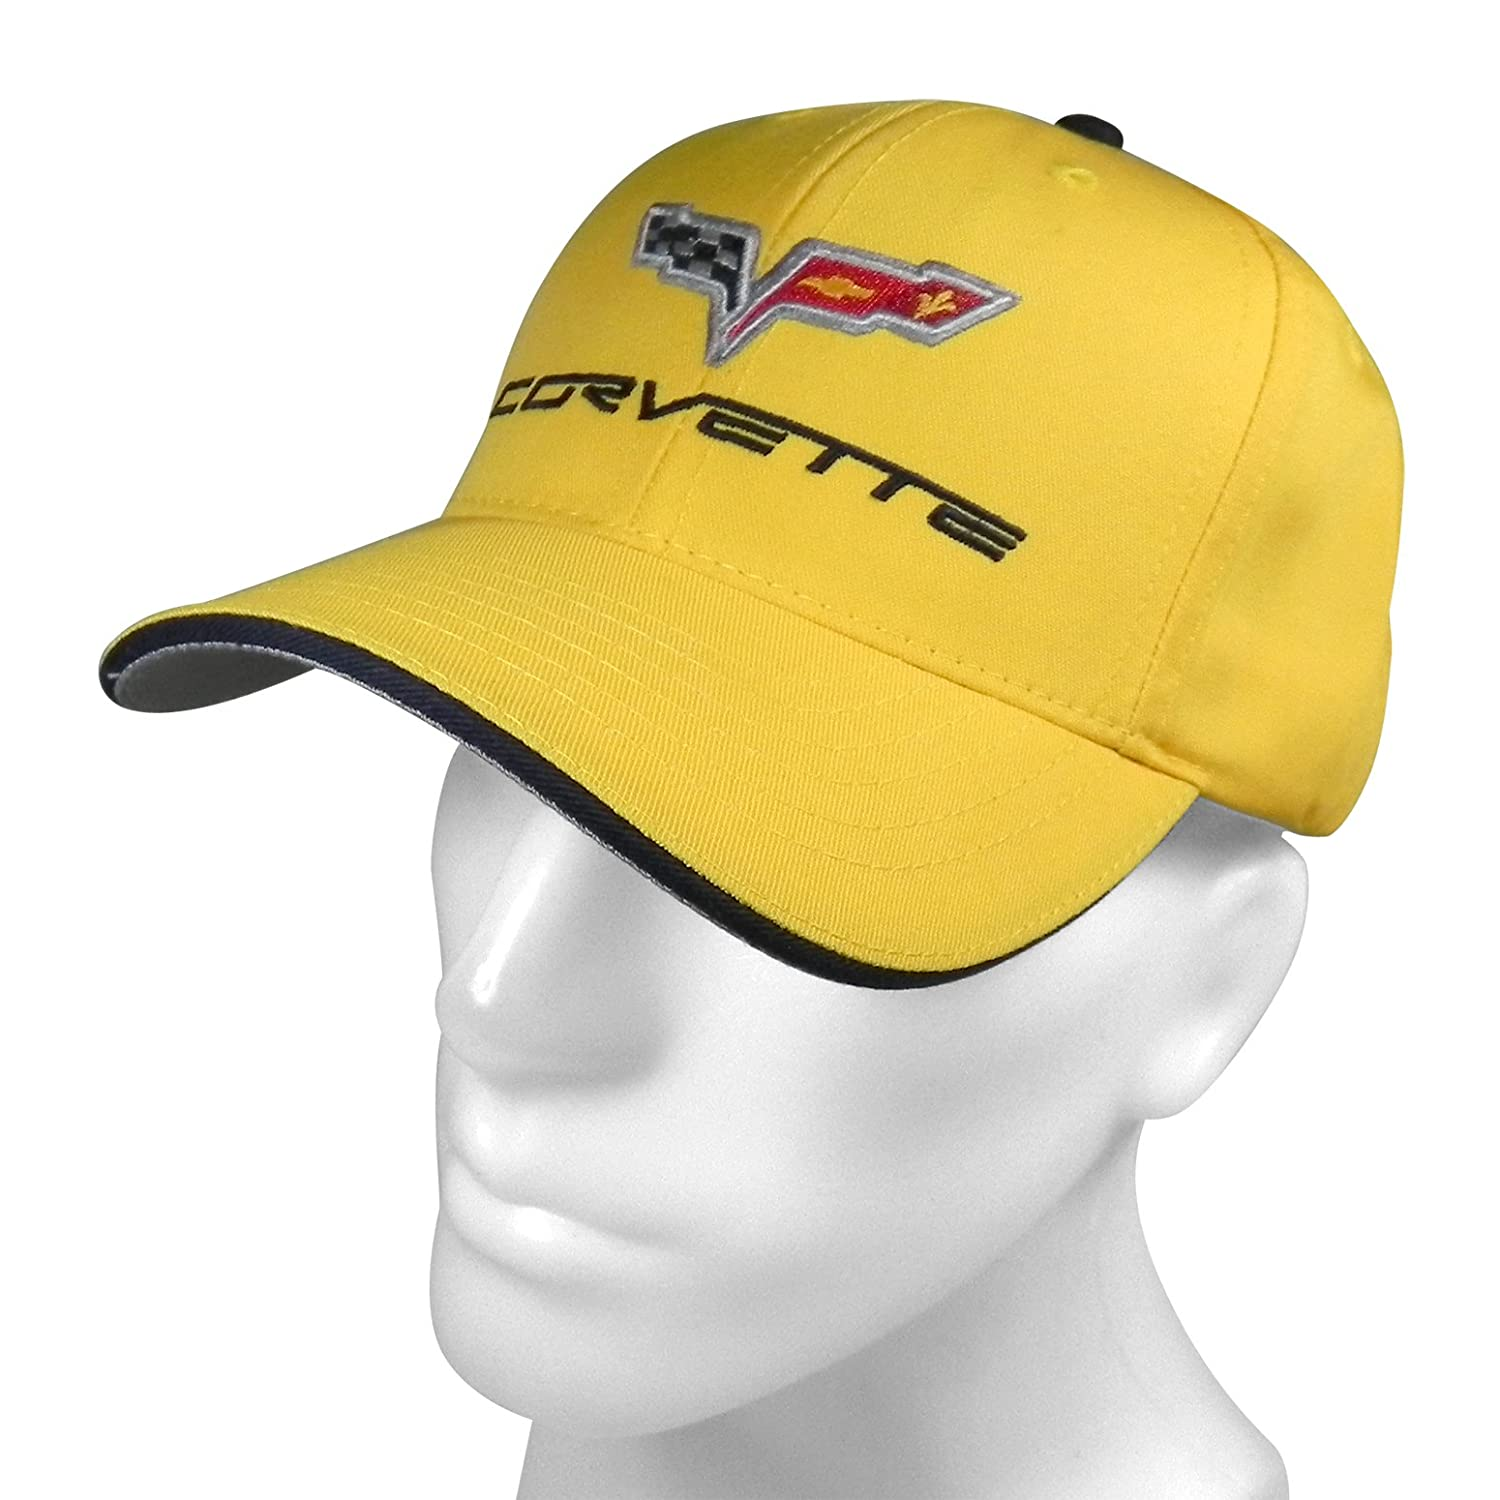 Chevrolet Corvette C6 Logo Yellow Baseball Cap Official RW